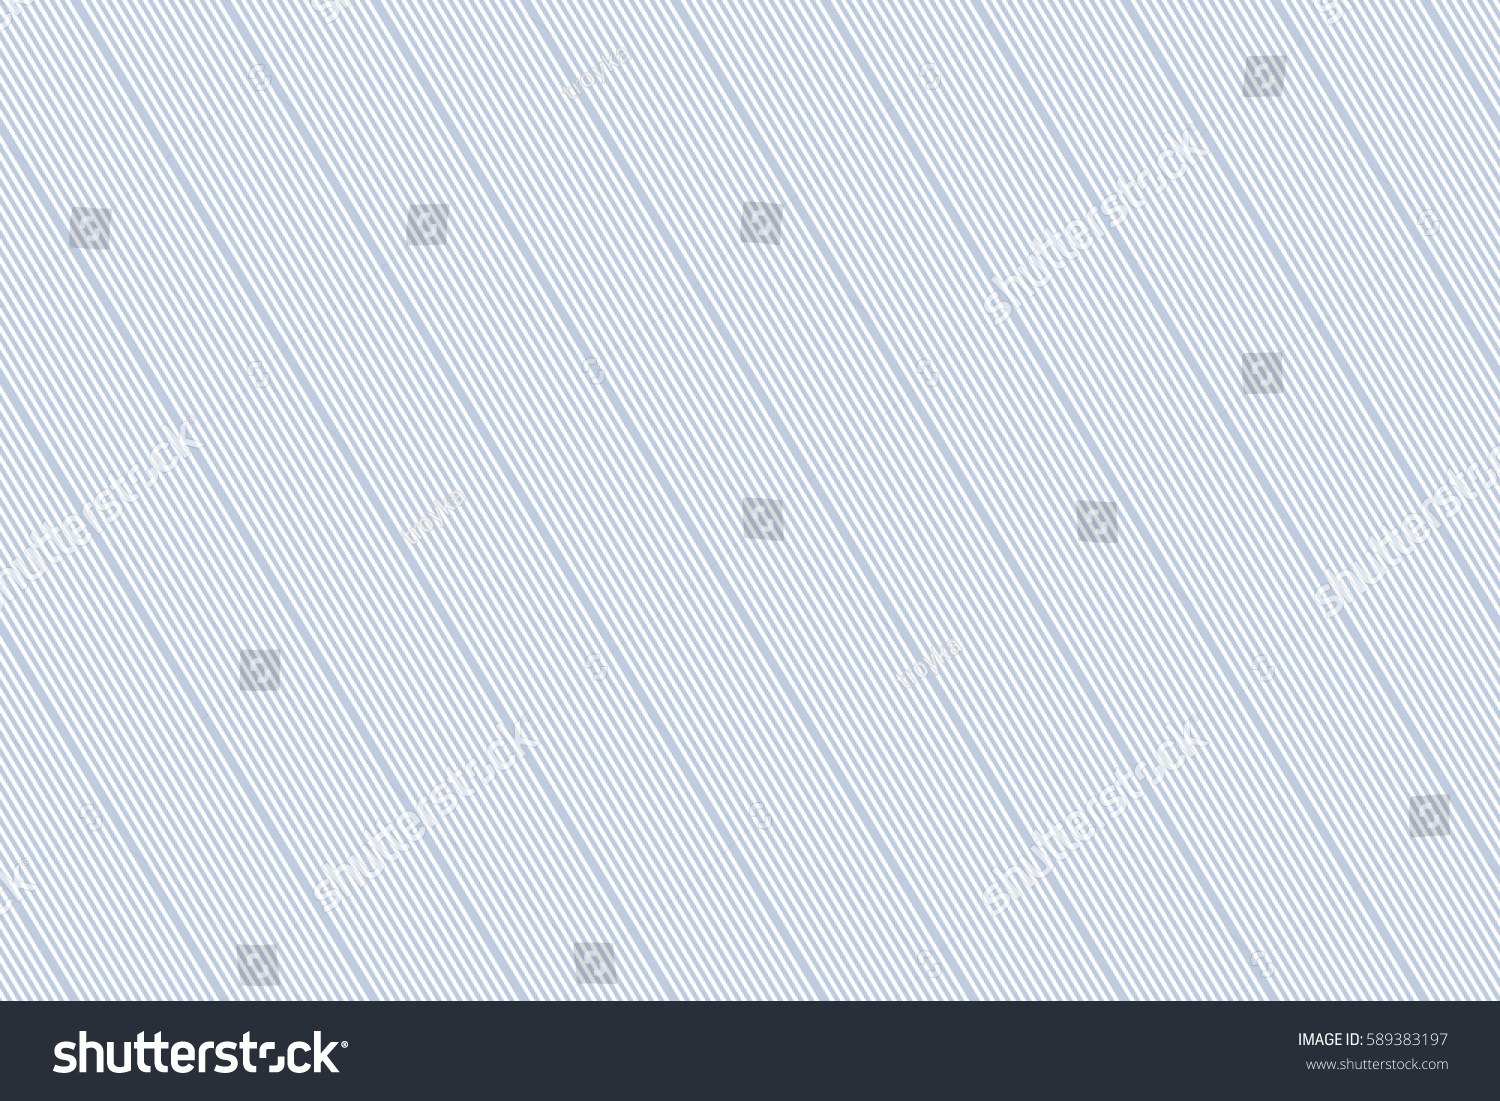 Line Texture Seamless : Striped lines texture seamless tripe pattern stock